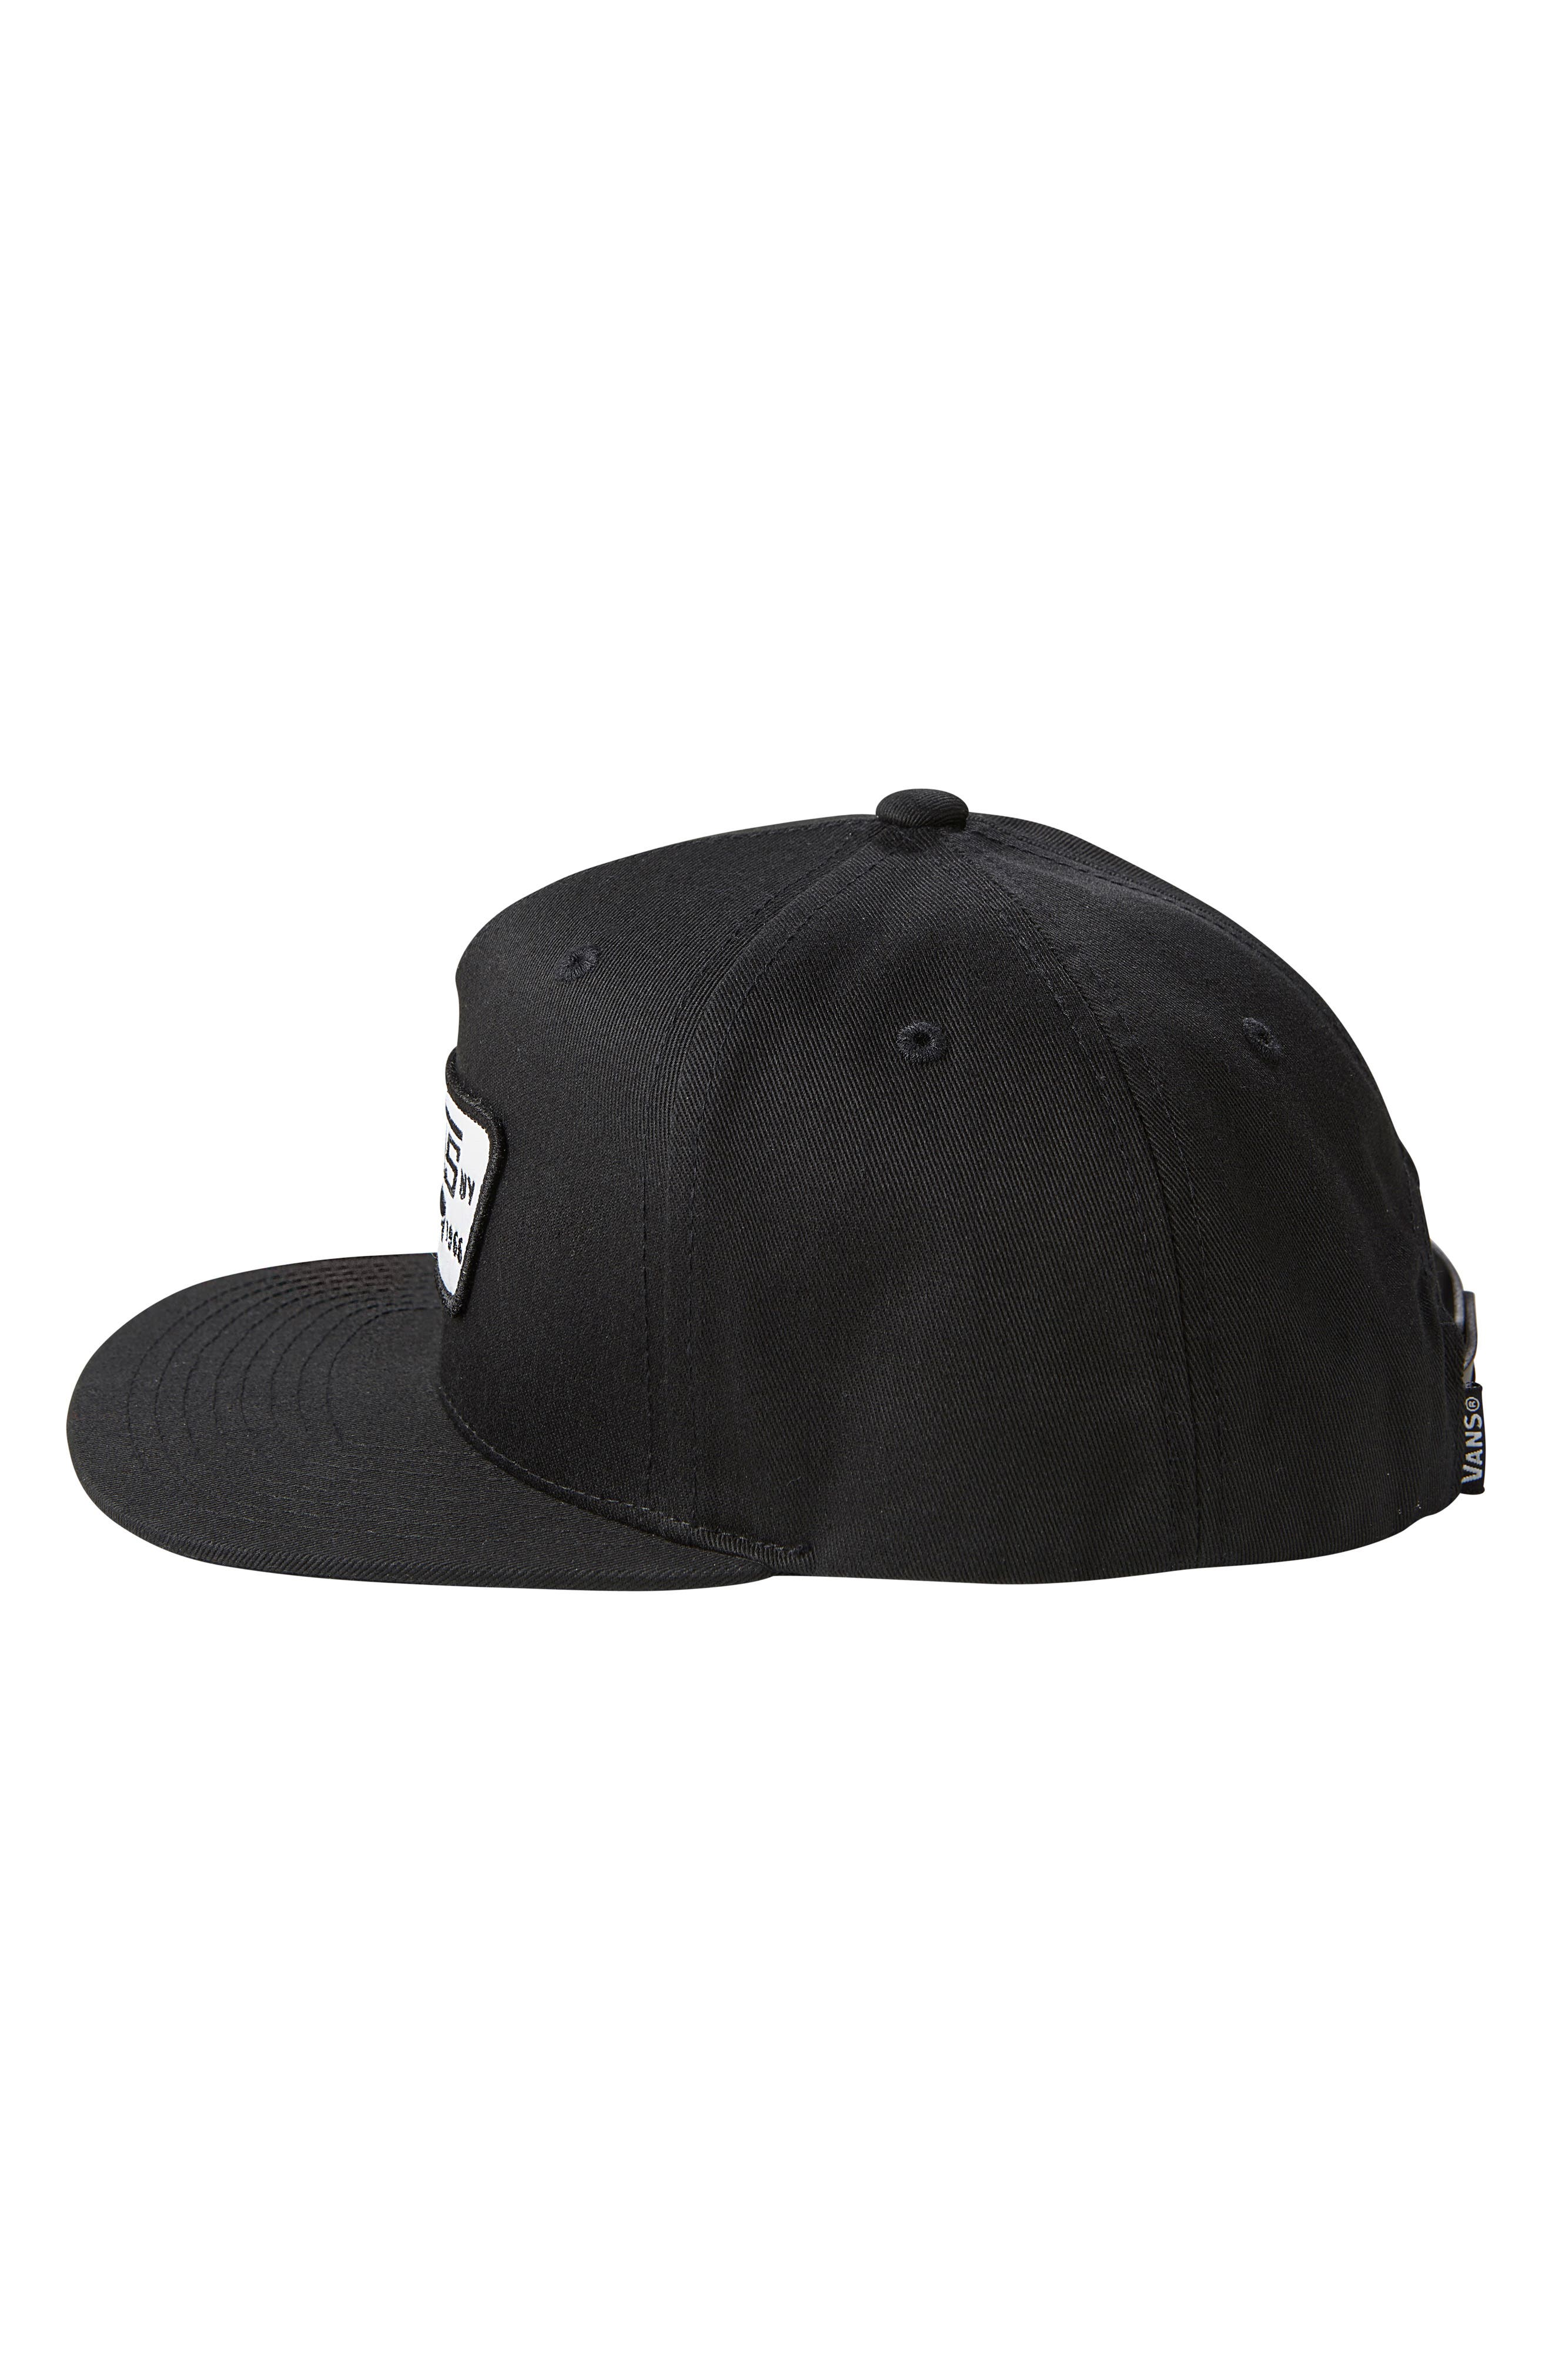 'Full Patch' Snapback Hat,                         Main,                         color, 001